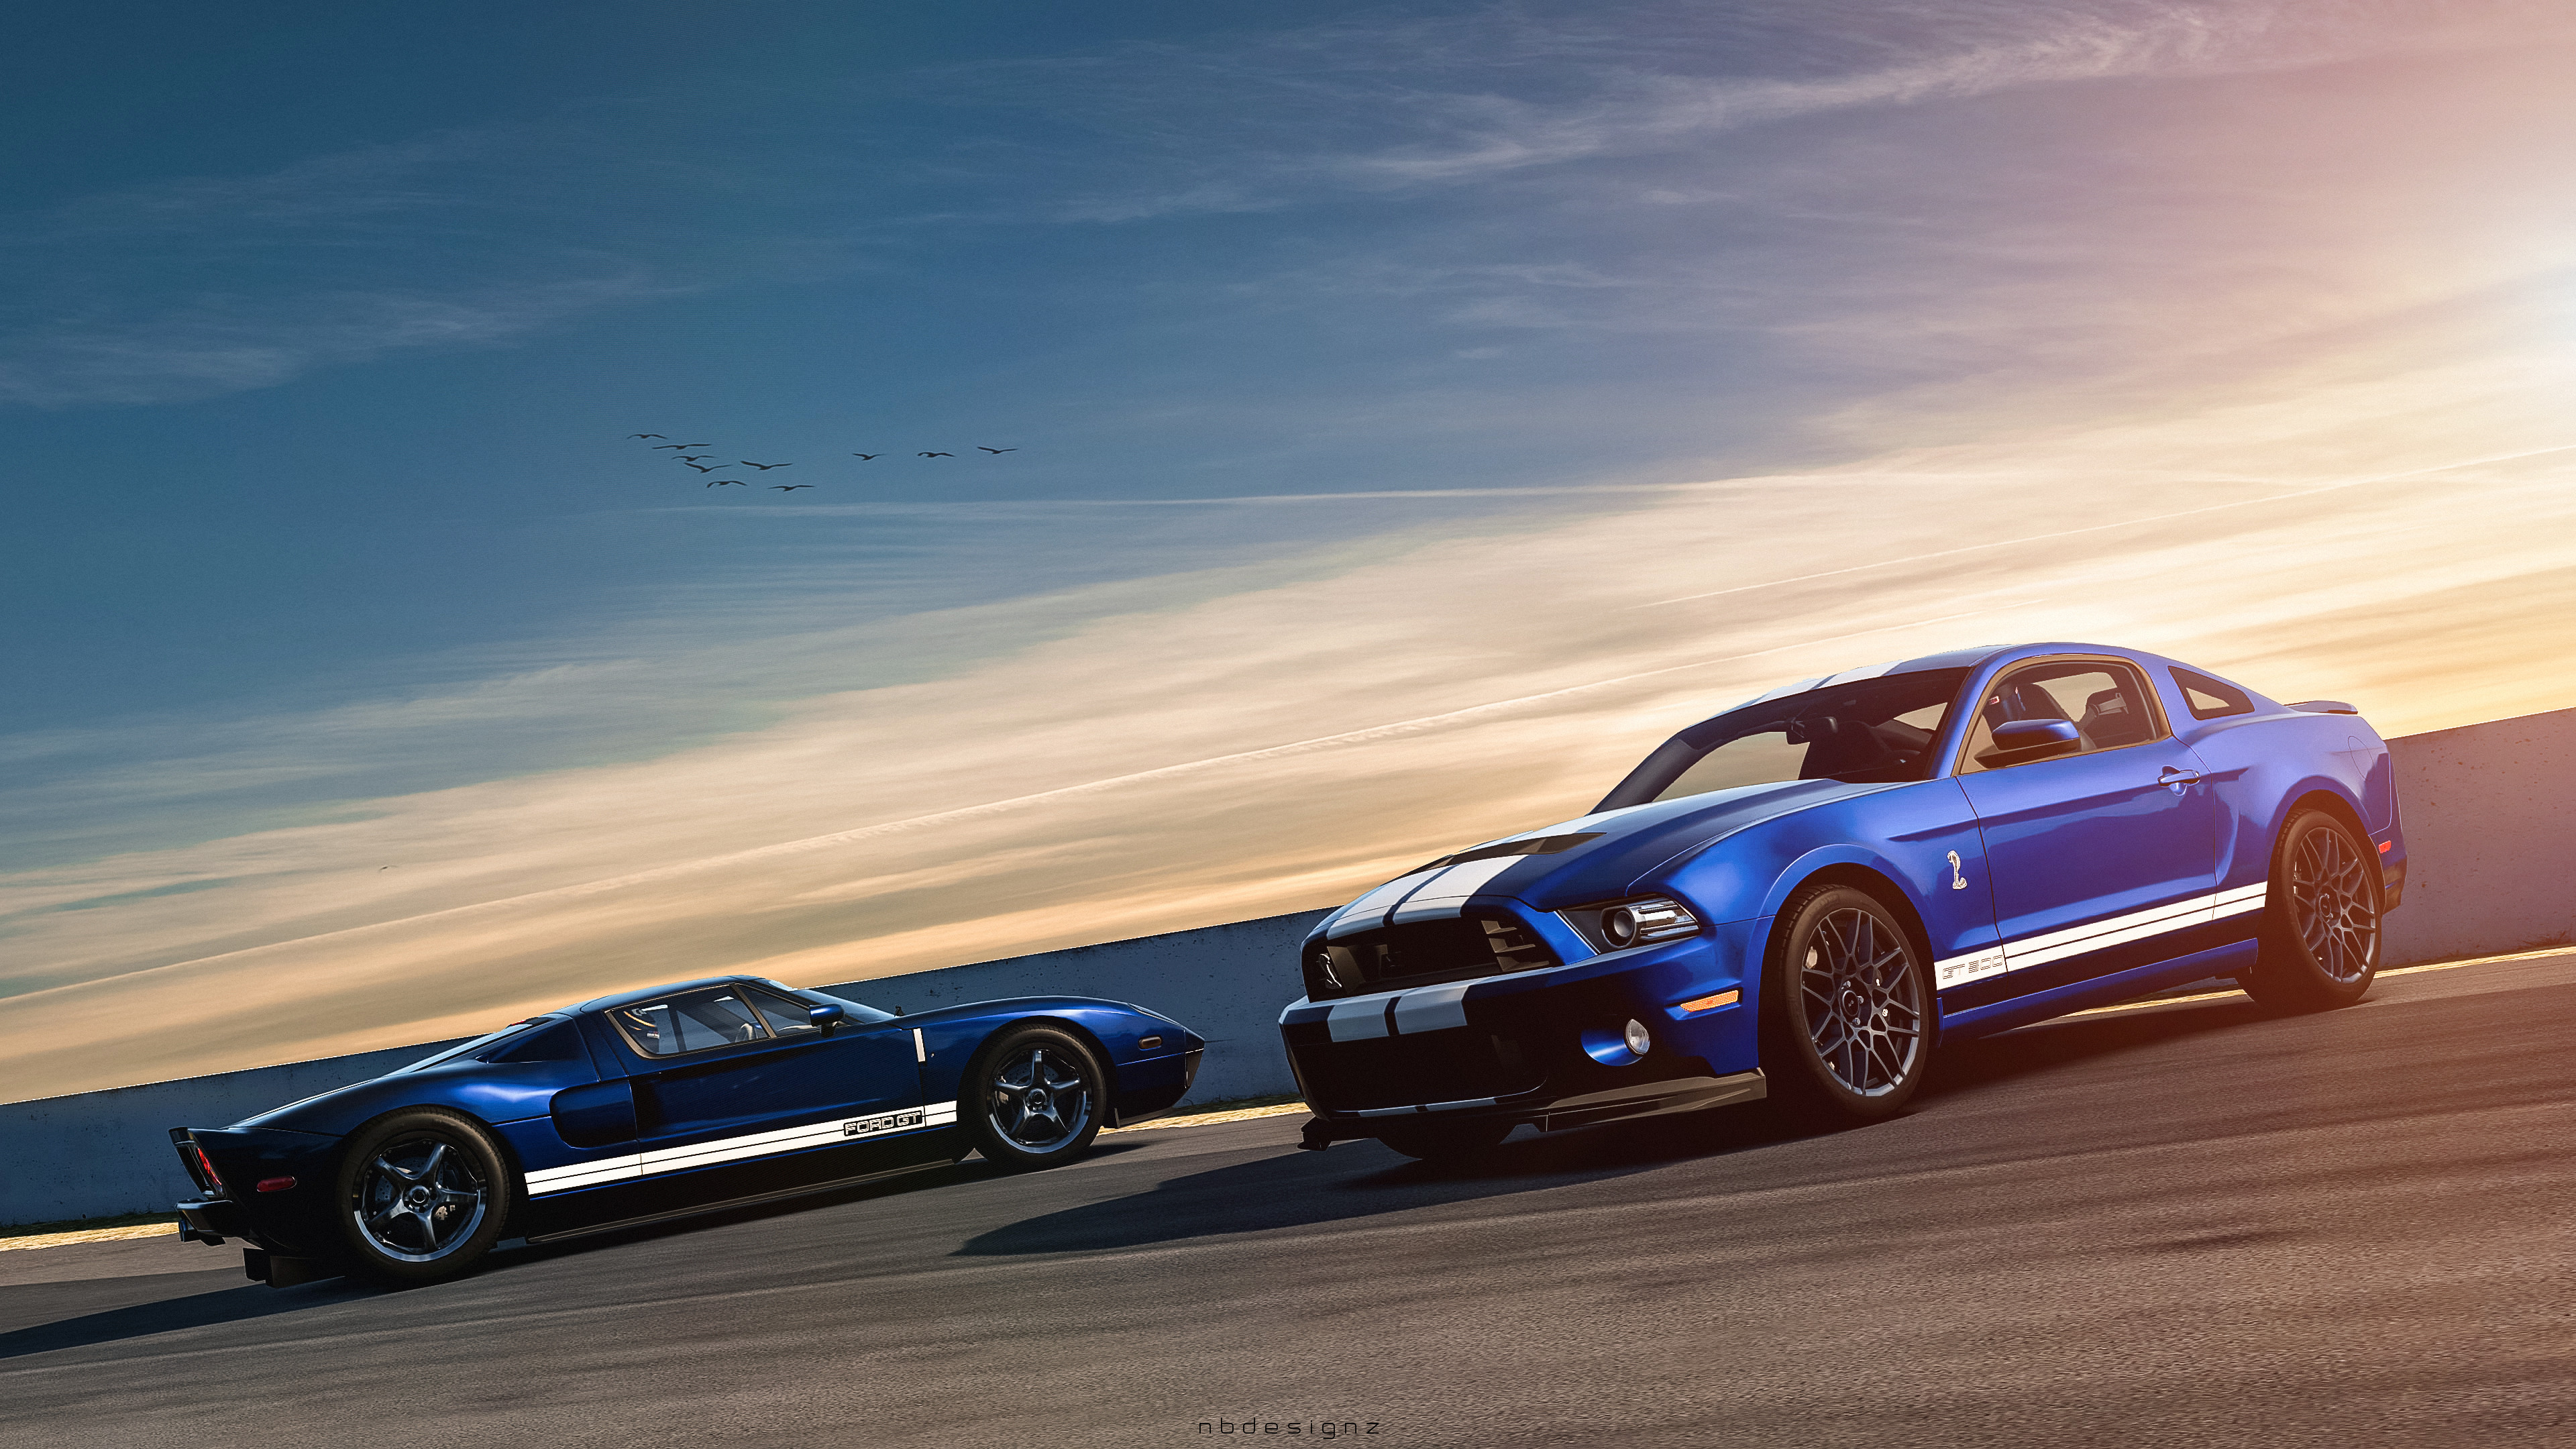 Res: 3840x2160, Ford Mustang Shelby GT500 Wallpapers 7 - 3840 X 2160